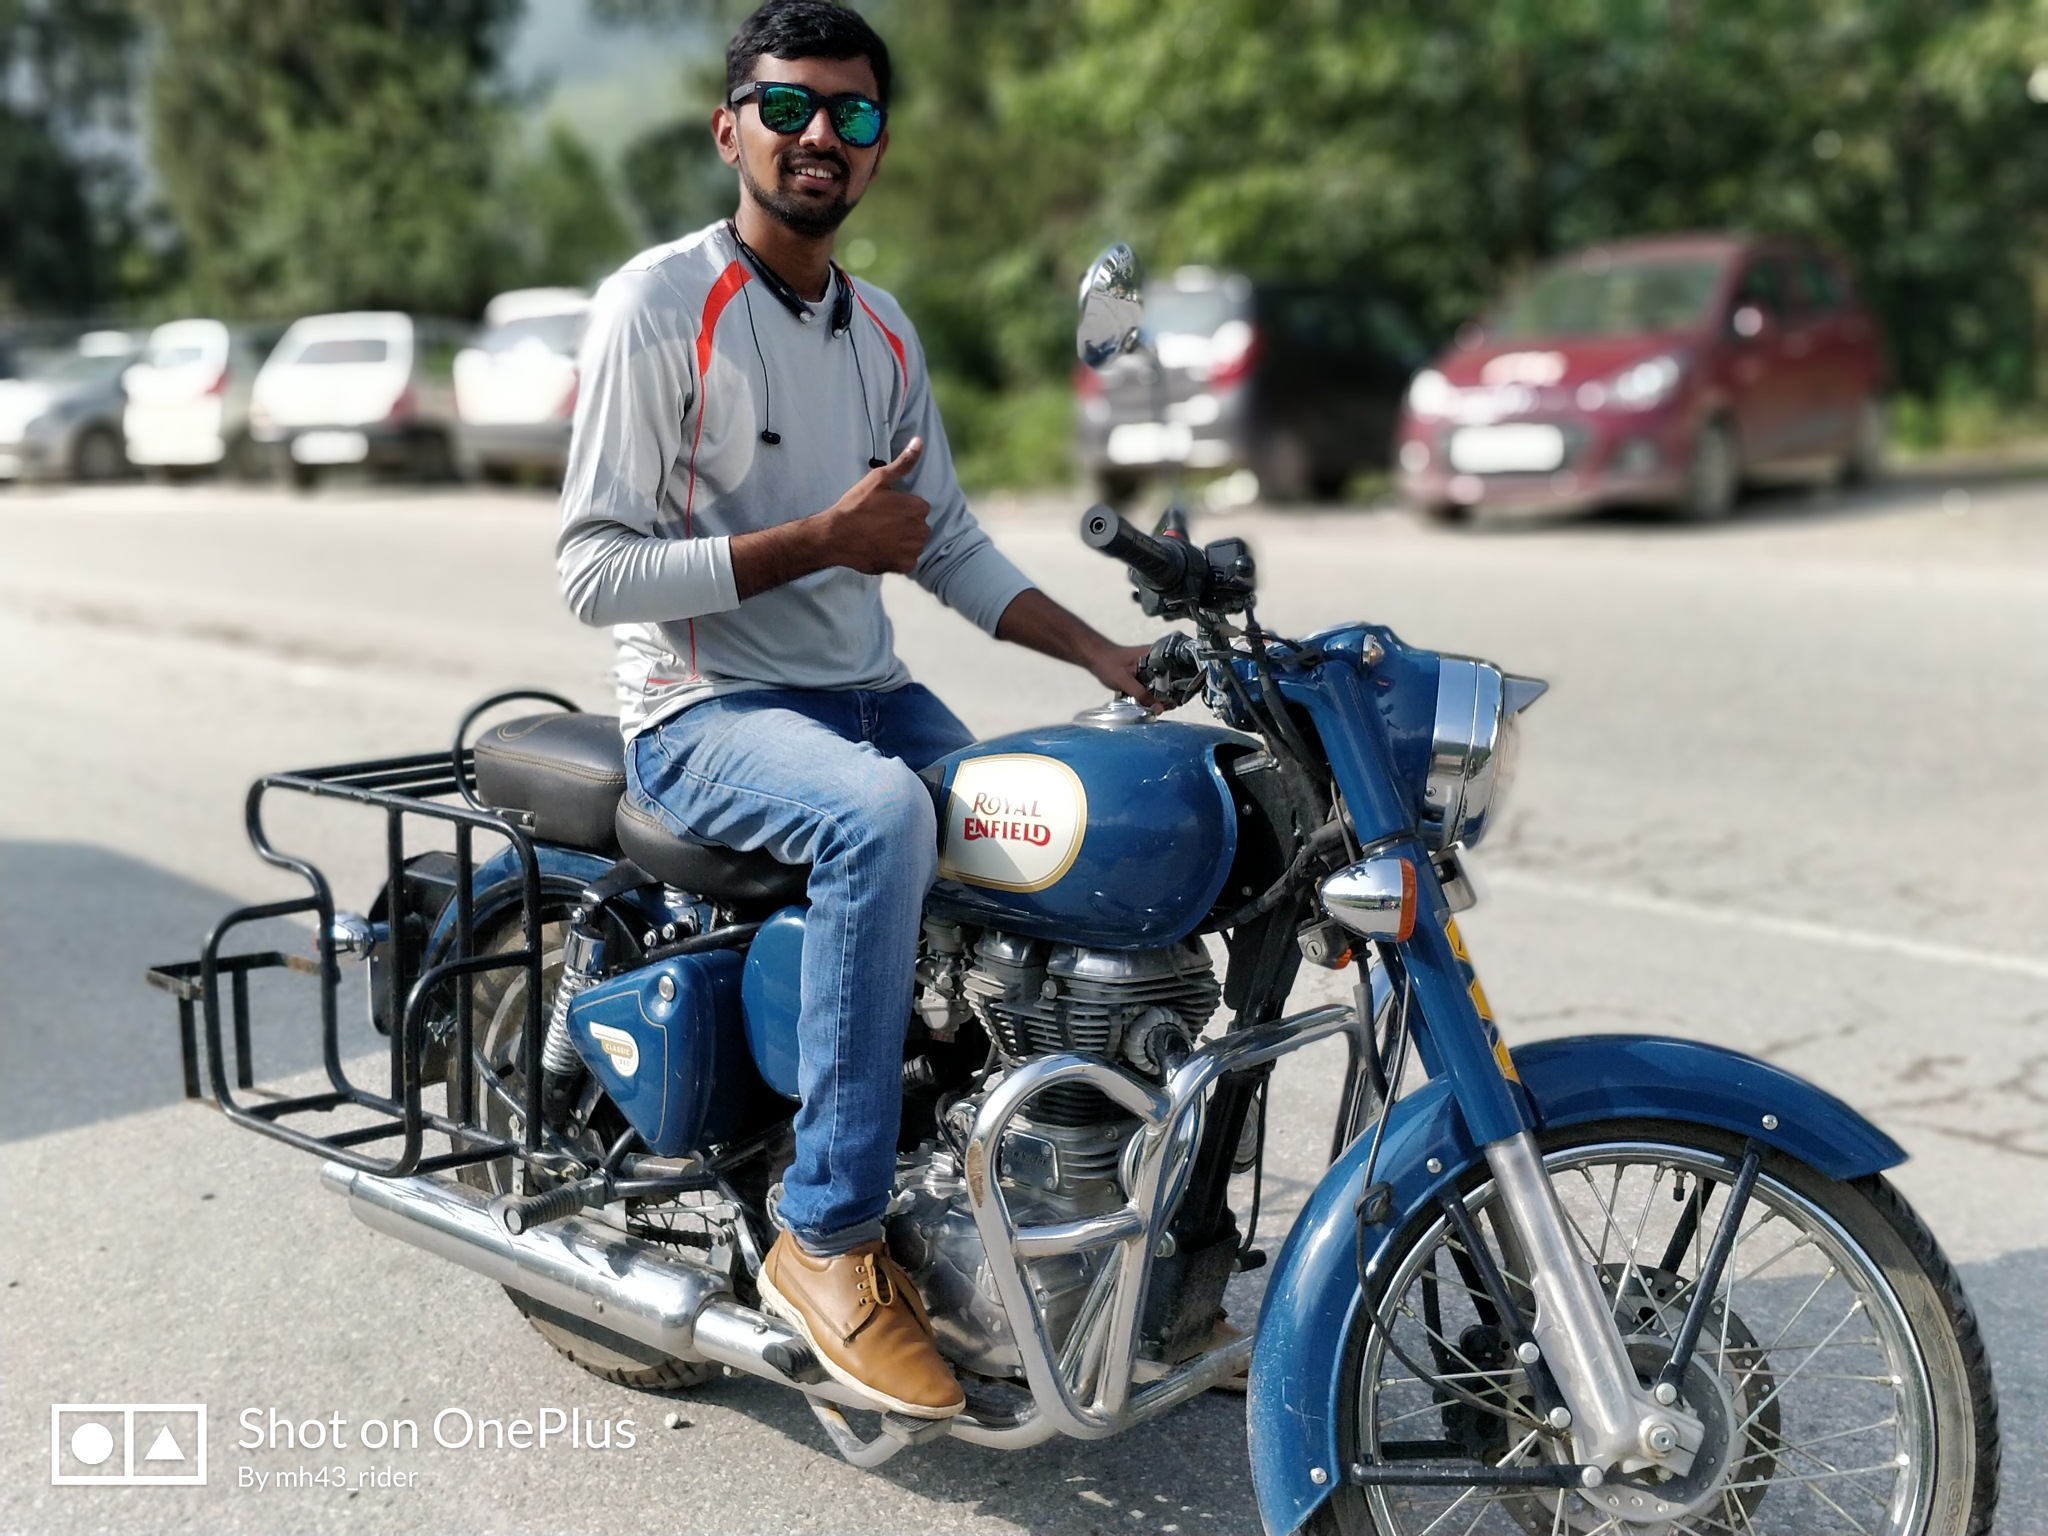 Bike Ride by Akshay Shelke (Mh43Rider)